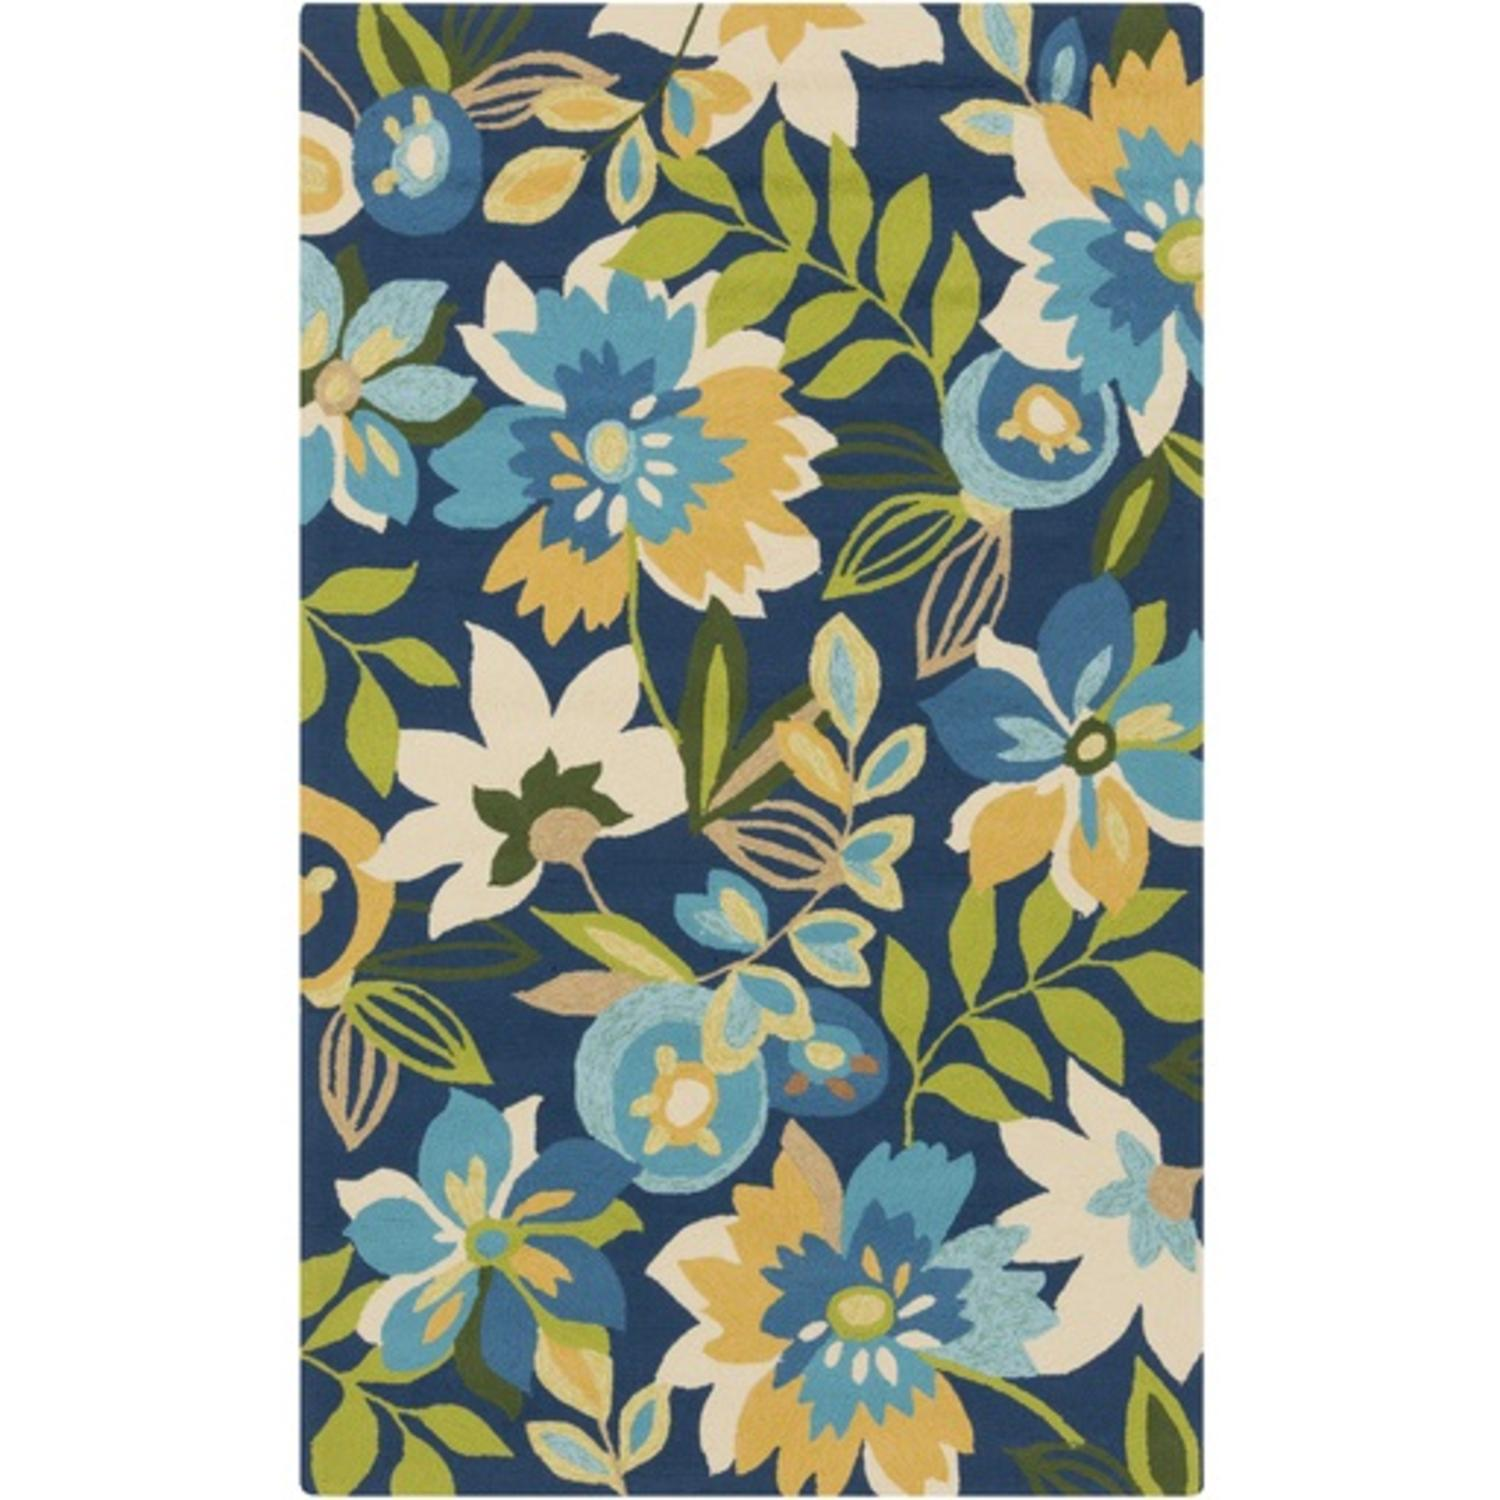 5' x 8' Fiori and Fogliame Blue and Green Hand Hooked Area Throw Rug